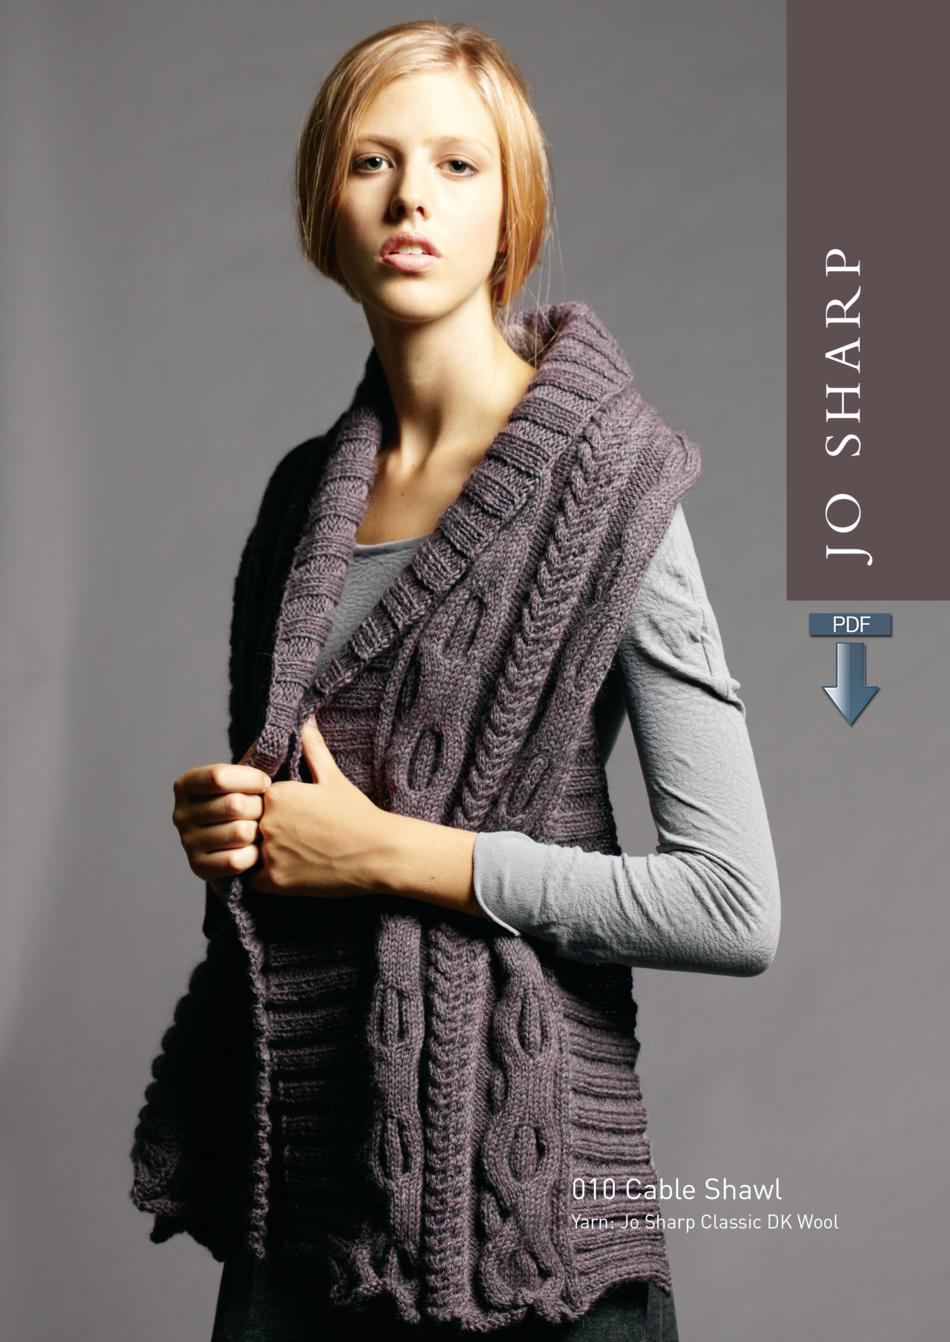 821d257c909630 Jo Sharp Cable Shawl plus Unisex V-Neck Sweater - Pattern Download Knitting  Pattern